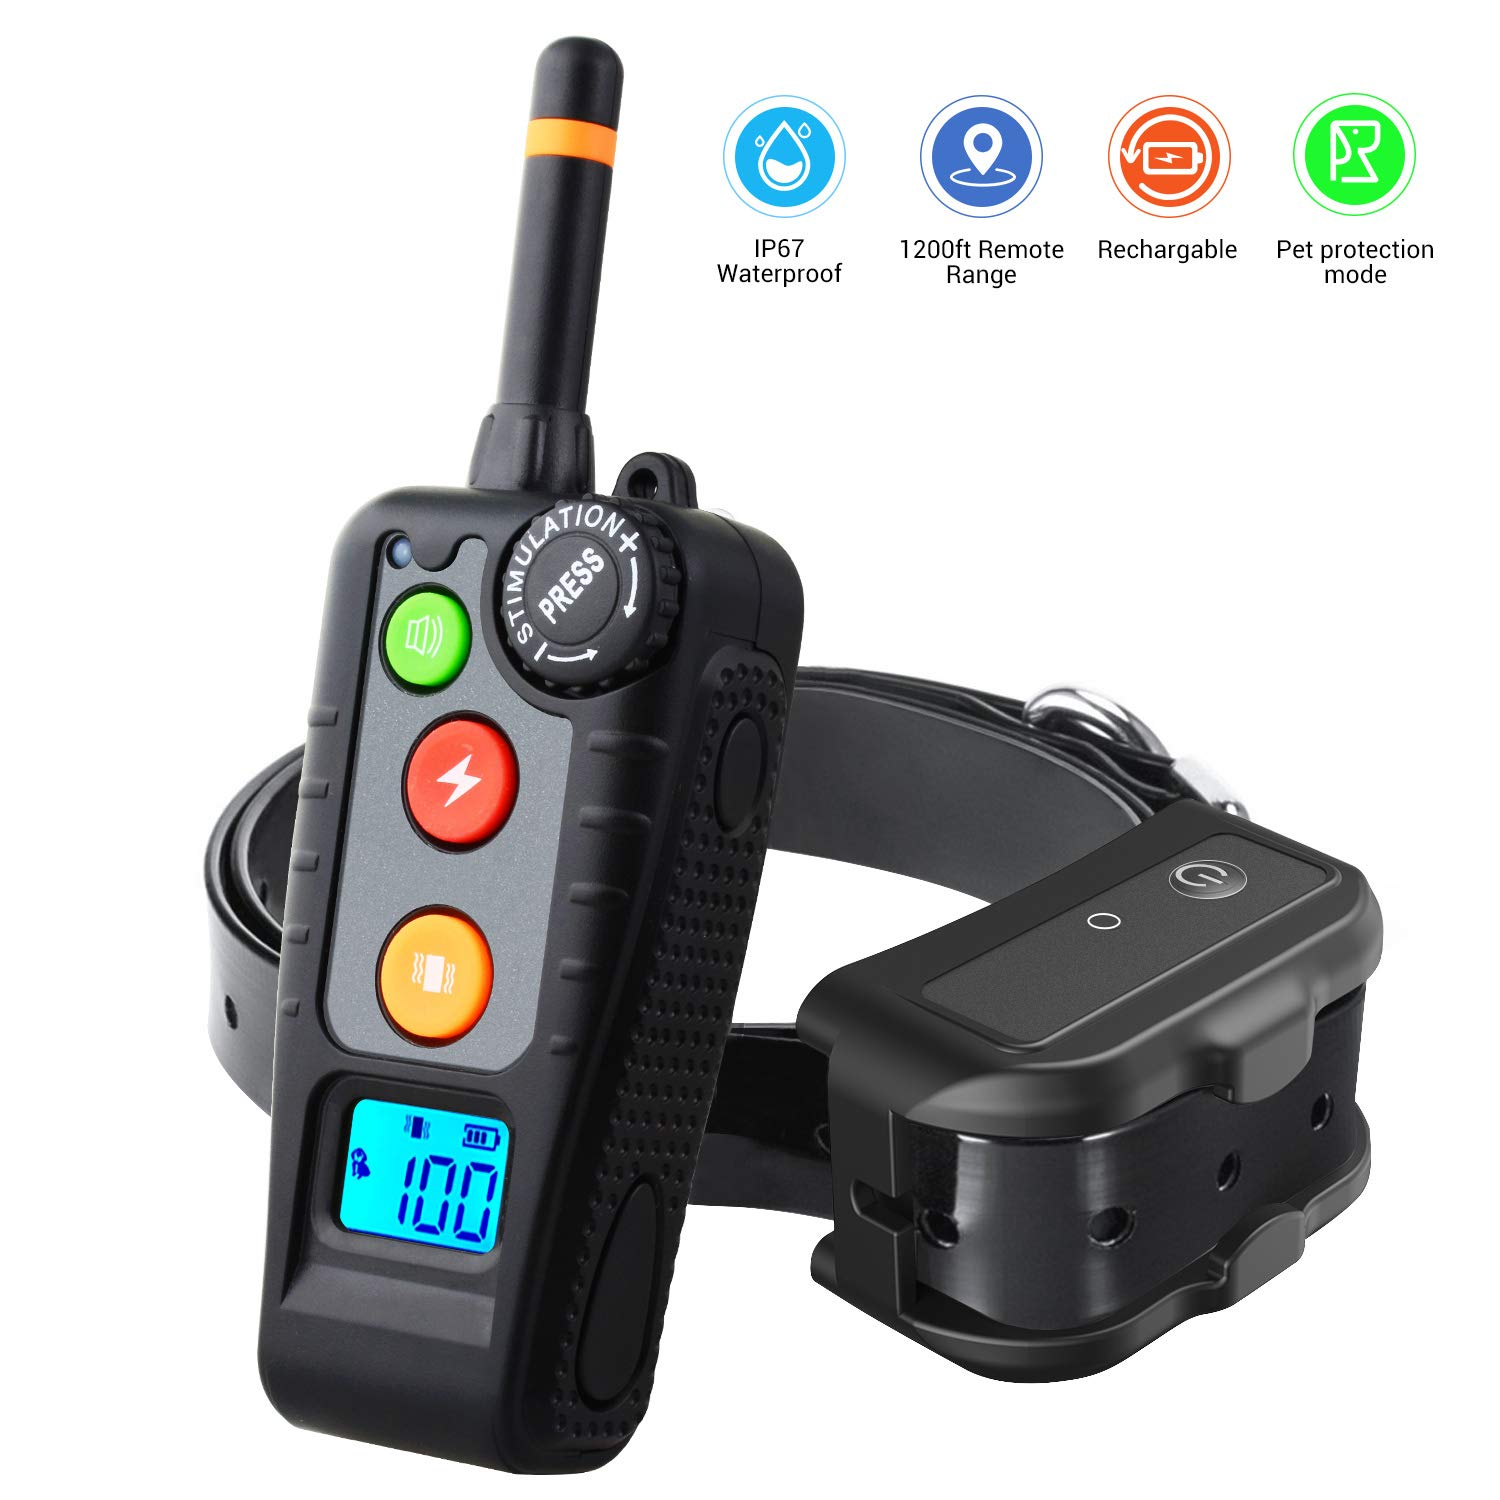 HOLDOG Rechargeable Dog Training Collar with 3 Training Modes, Beep, Vibration and Shock, 100% Waterproof Dog Shock Collar for 1200FT Remote Range